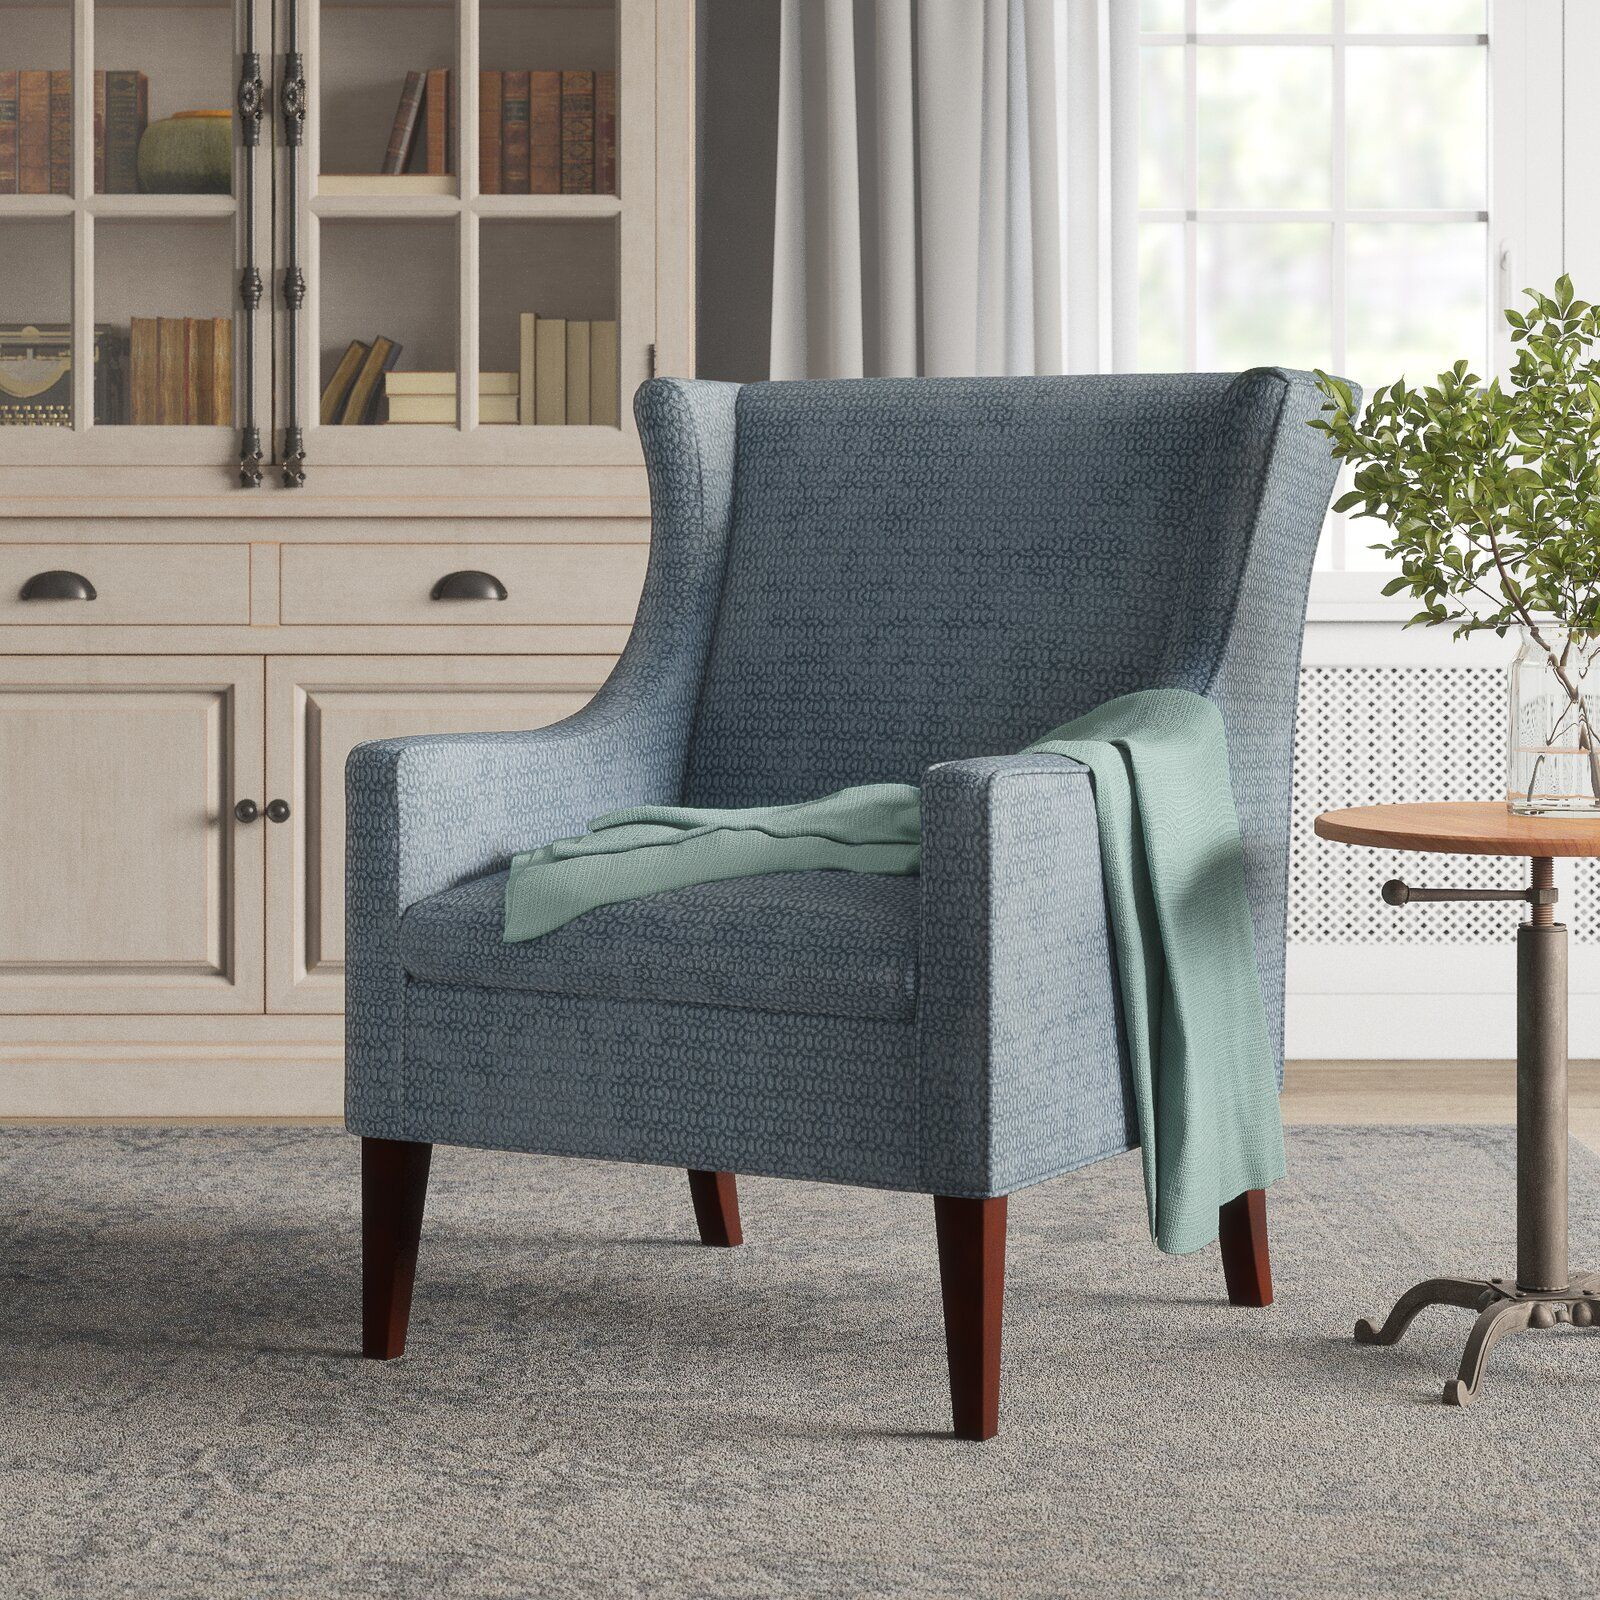 Matherville Wingback Chair $315 – Birch Lane In 2020 Inside Chagnon Wingback Chairs (View 13 of 15)